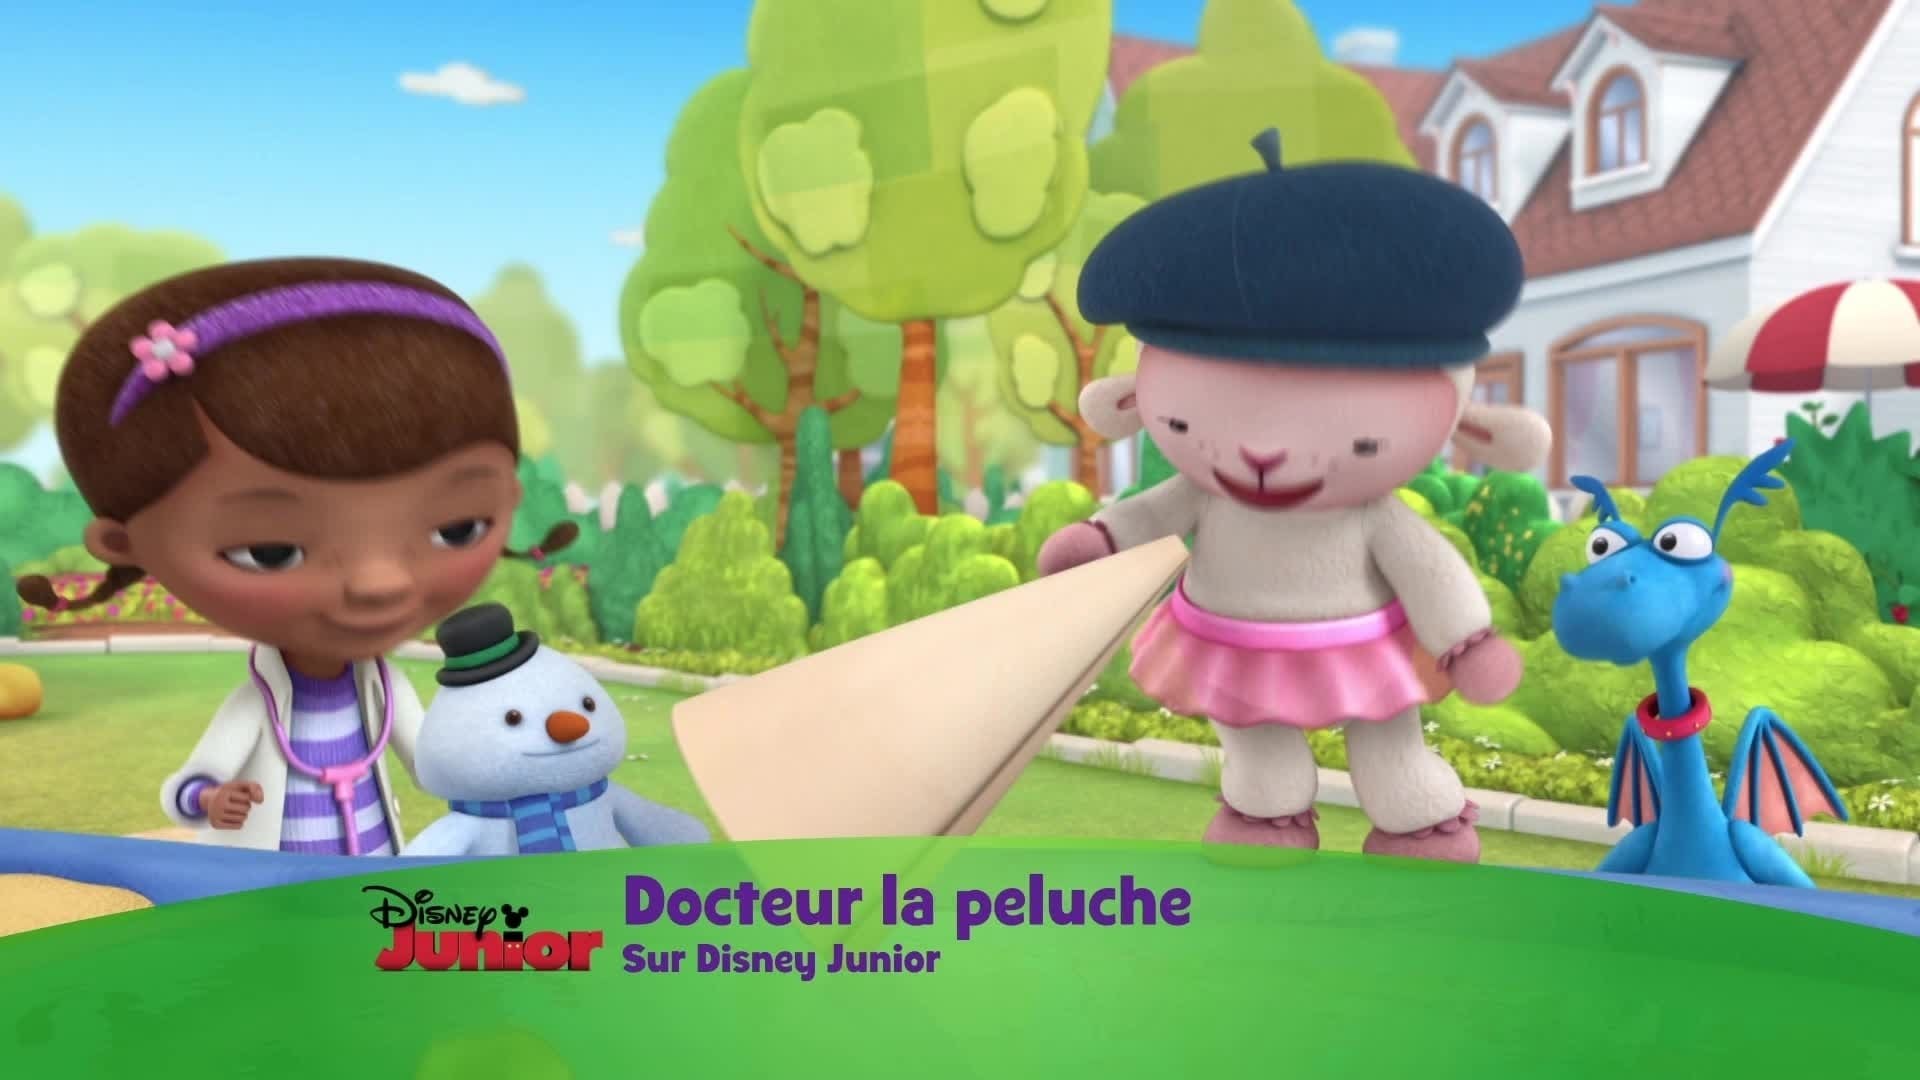 Docteur la peluche disney junior - Disney docteur la peluche ...